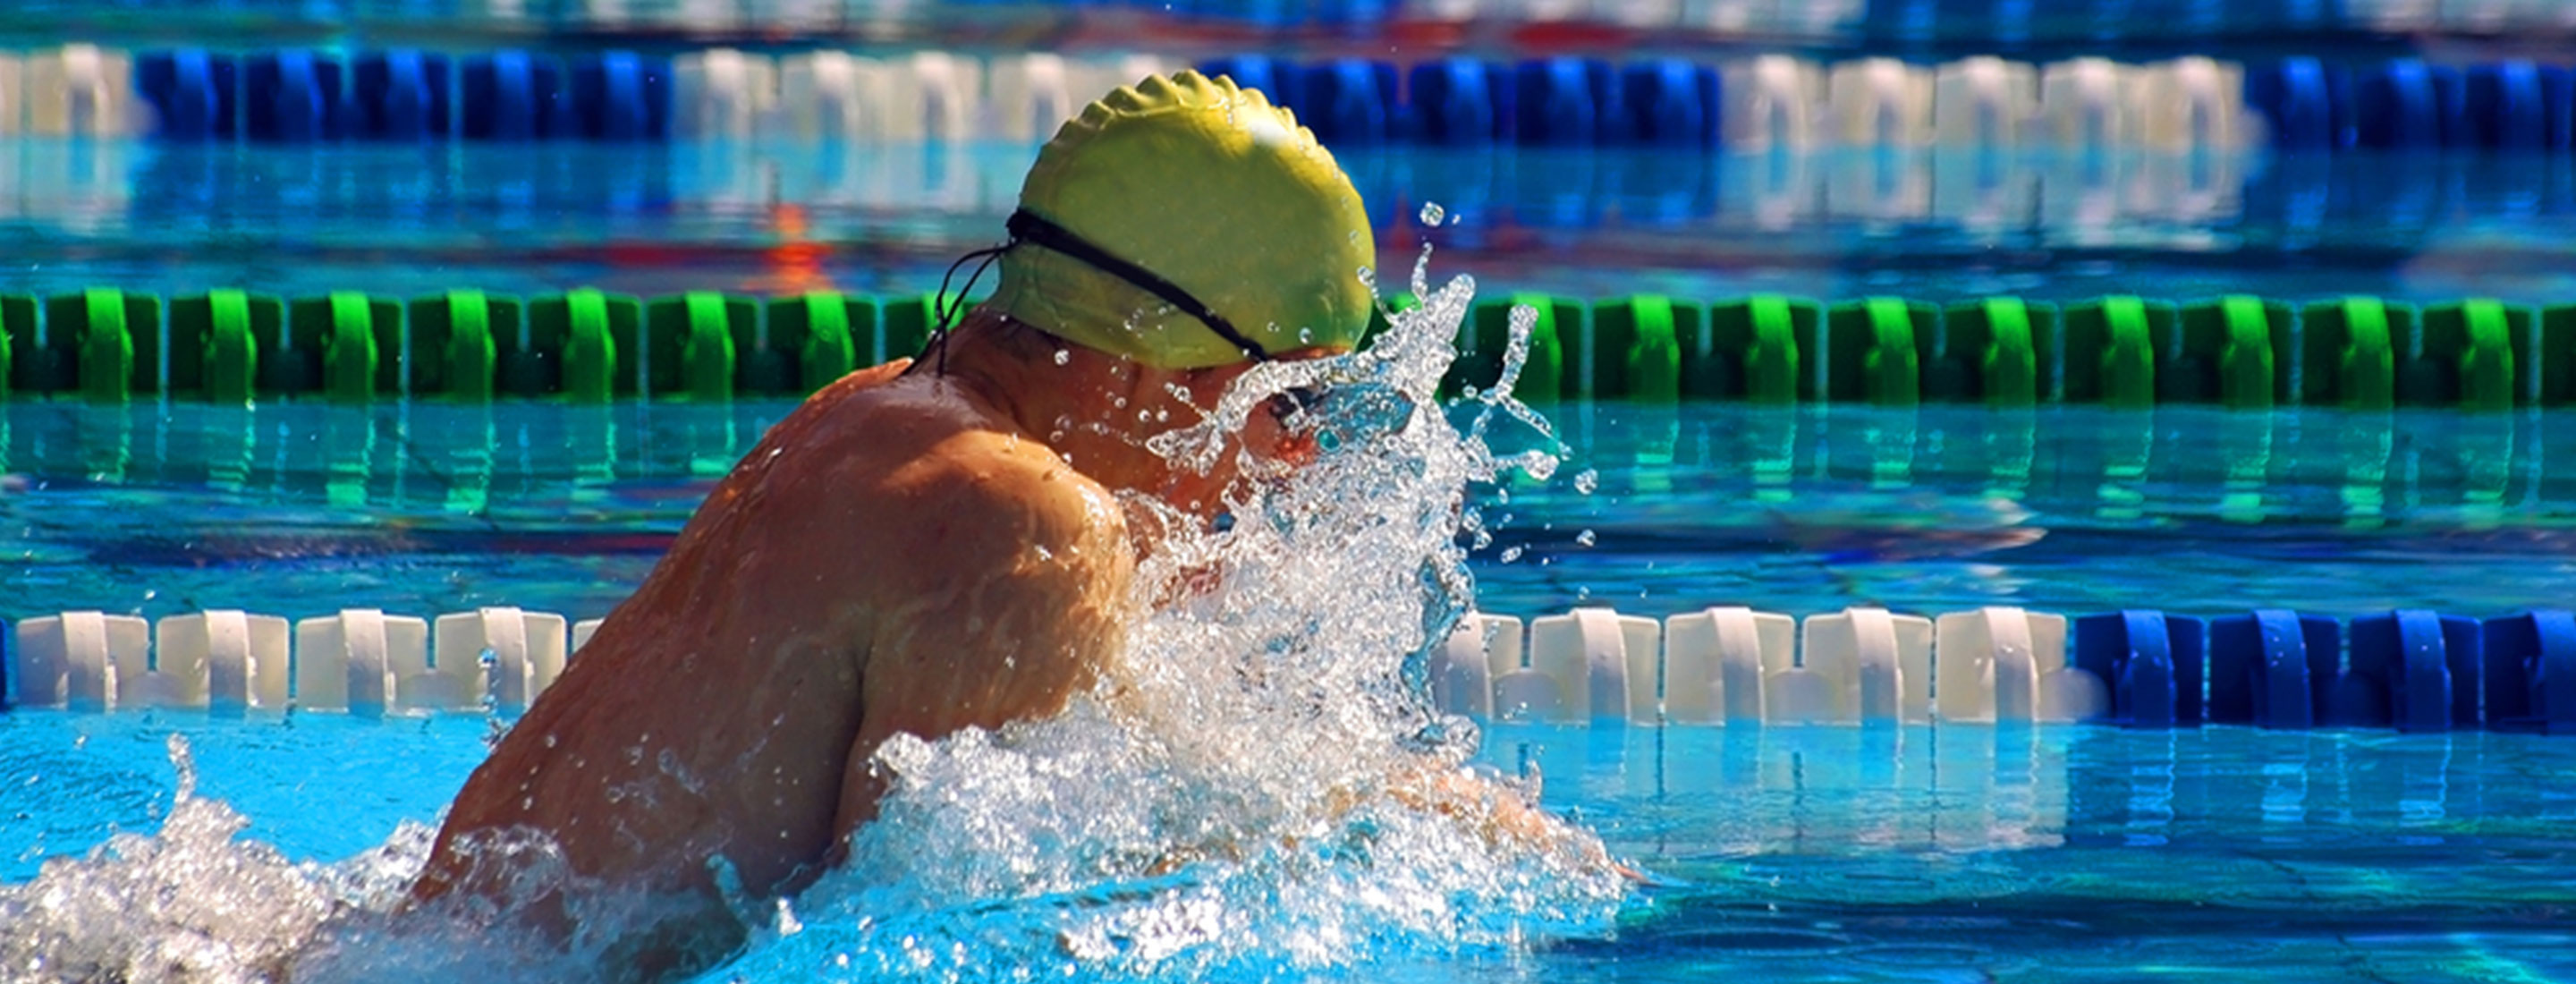 Swimmer Breaststroke